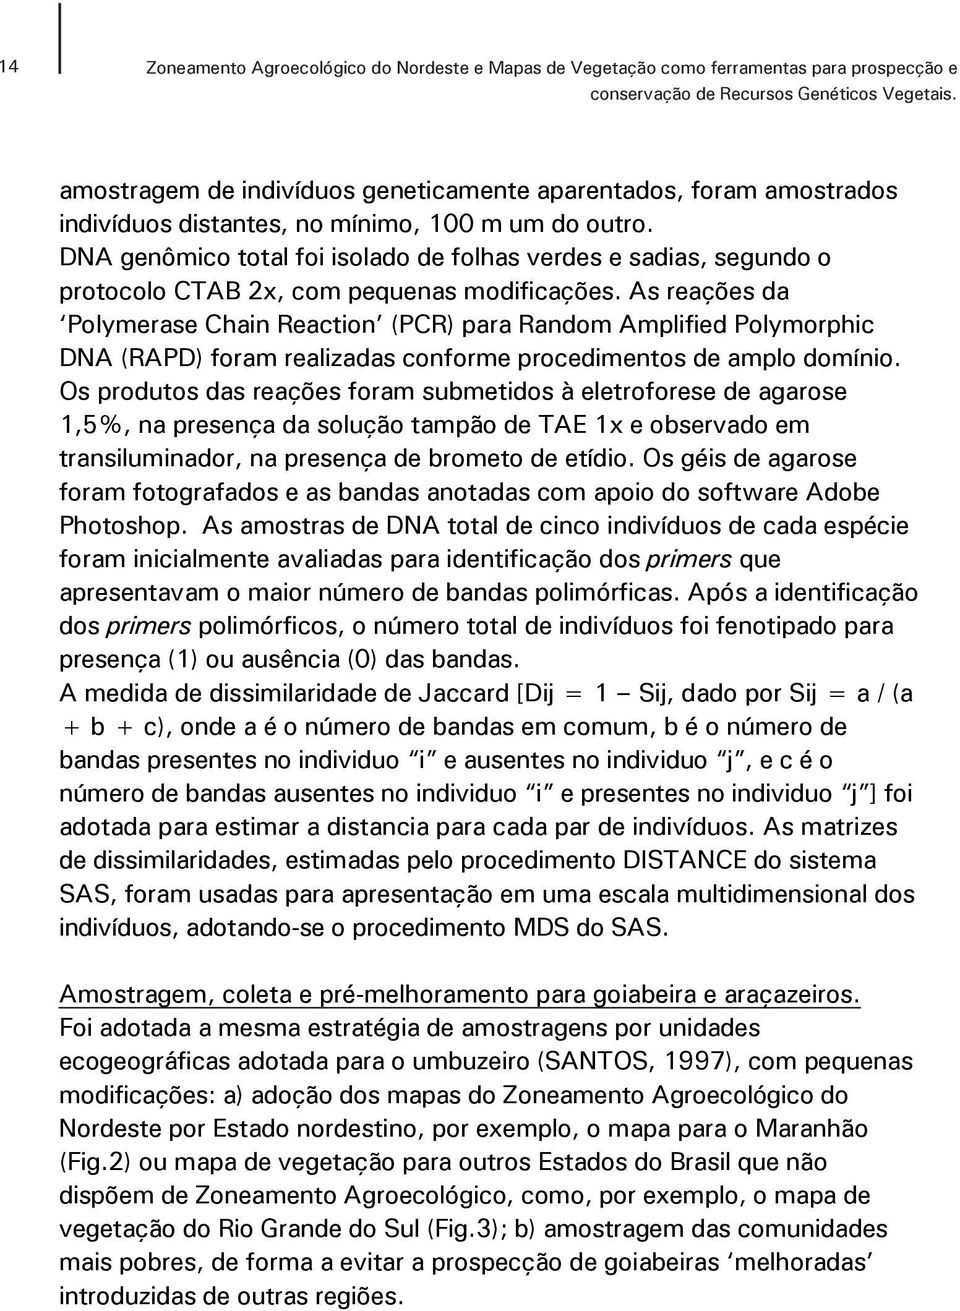 As reações da Polymerase Chain Reaction (PCR) para Random Amplified Polymorphic DNA (RAPD) foram realizadas conforme procedimentos de amplo domínio.